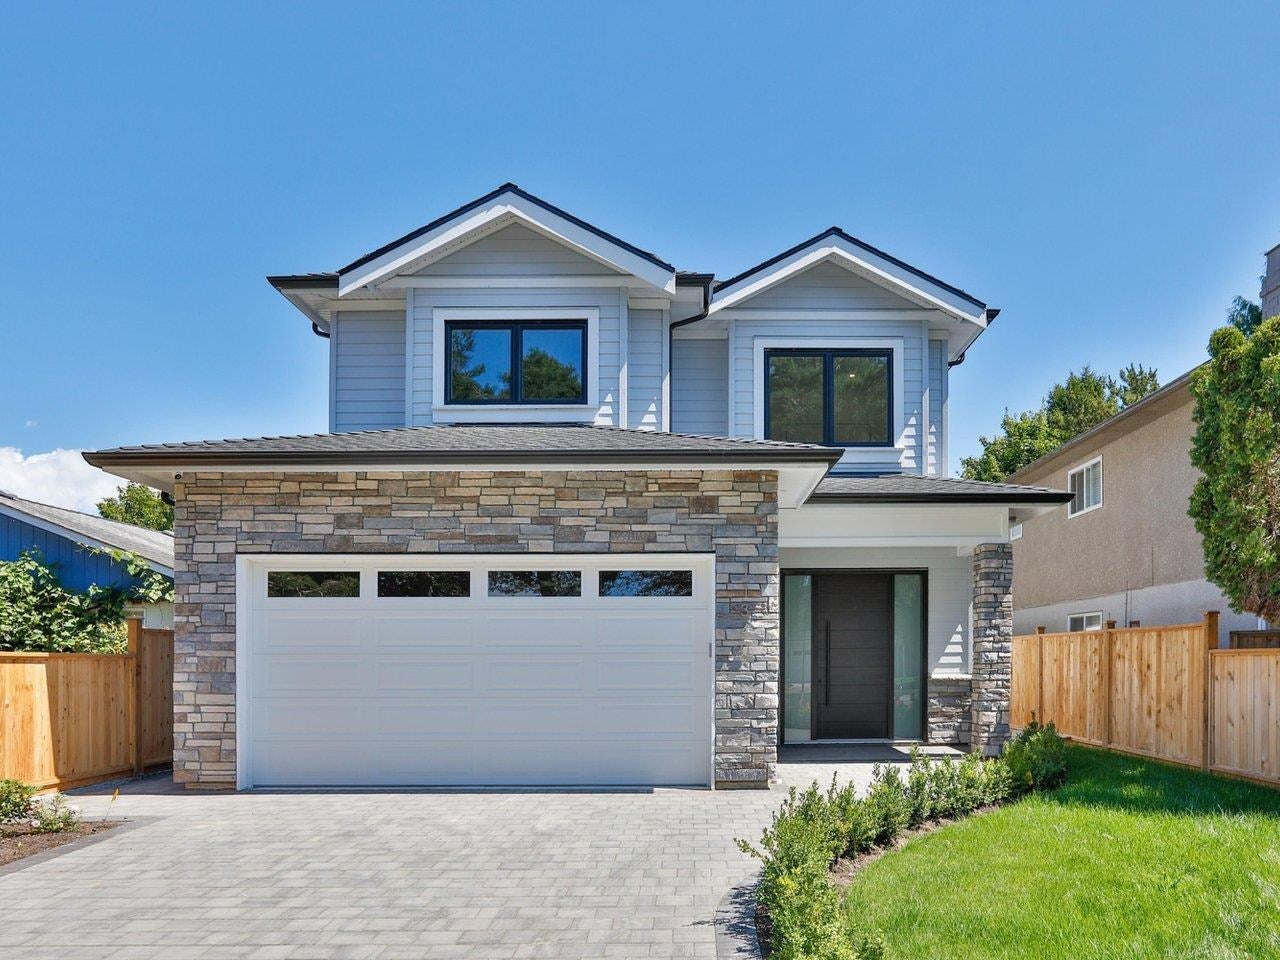 11340 CLIPPER COURT - Steveston South House/Single Family for sale, 4 Bedrooms (R2605760)